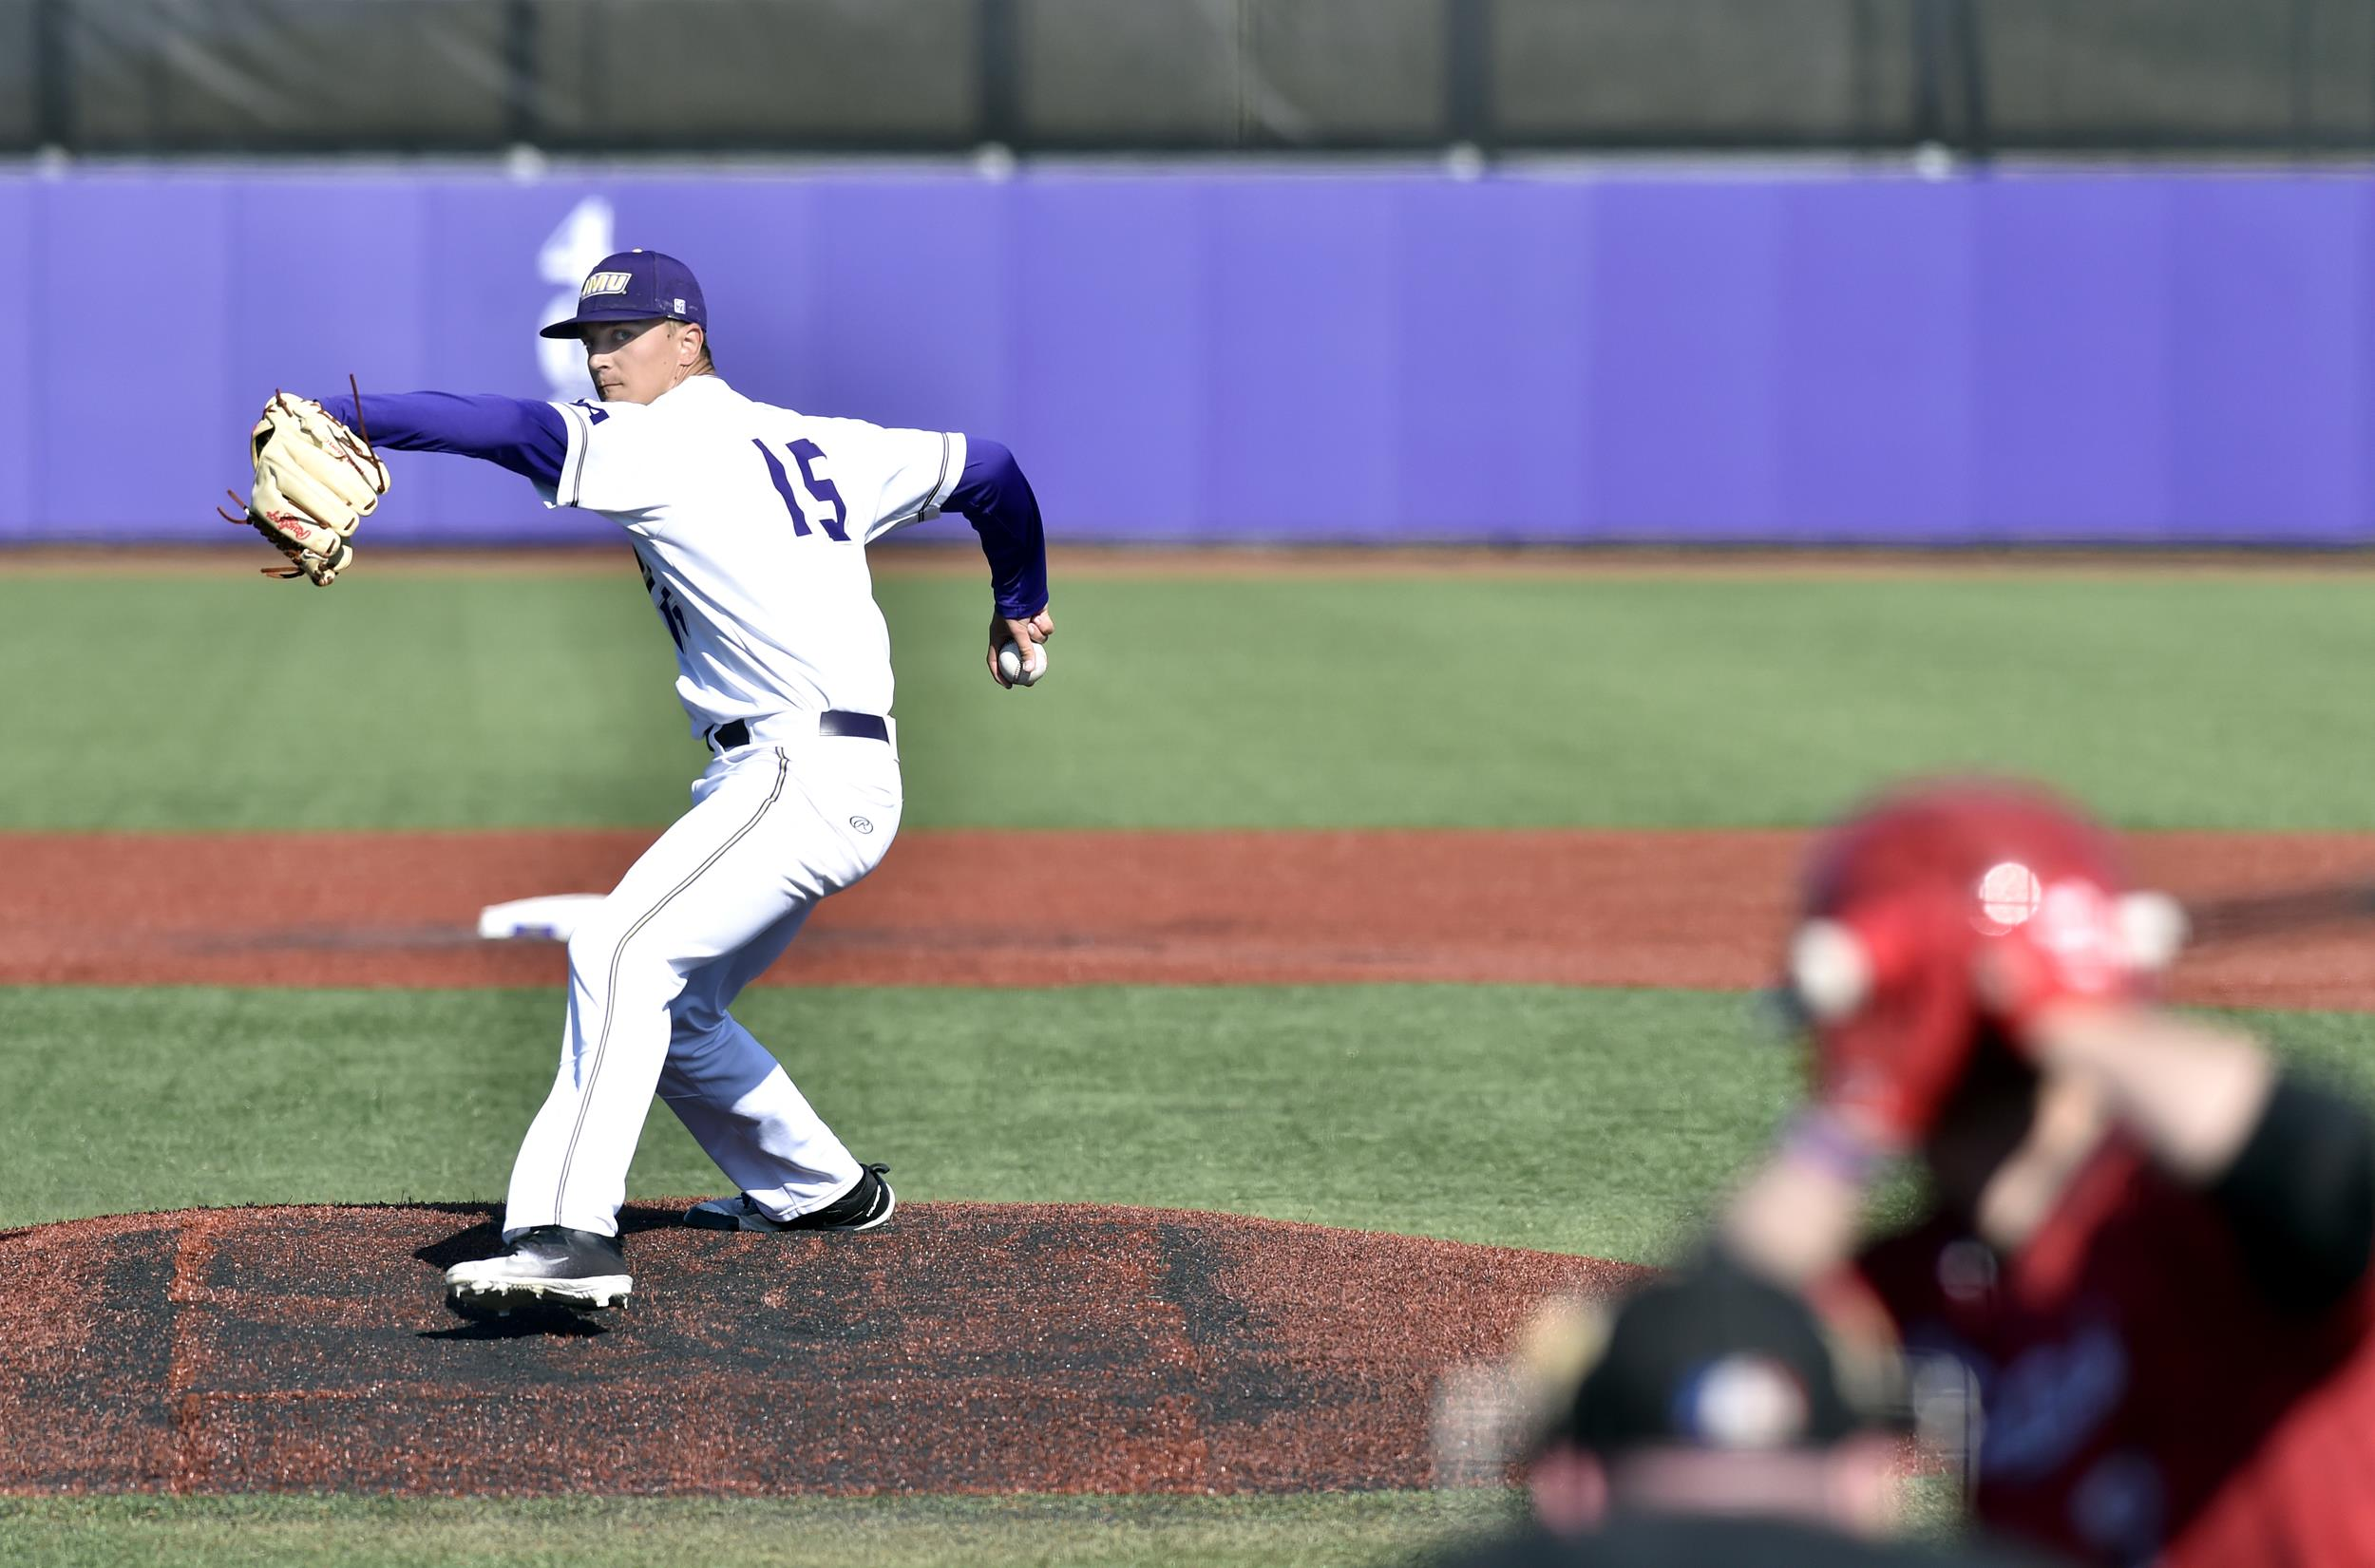 Baseball: Bechtold Earns First Win of the Year